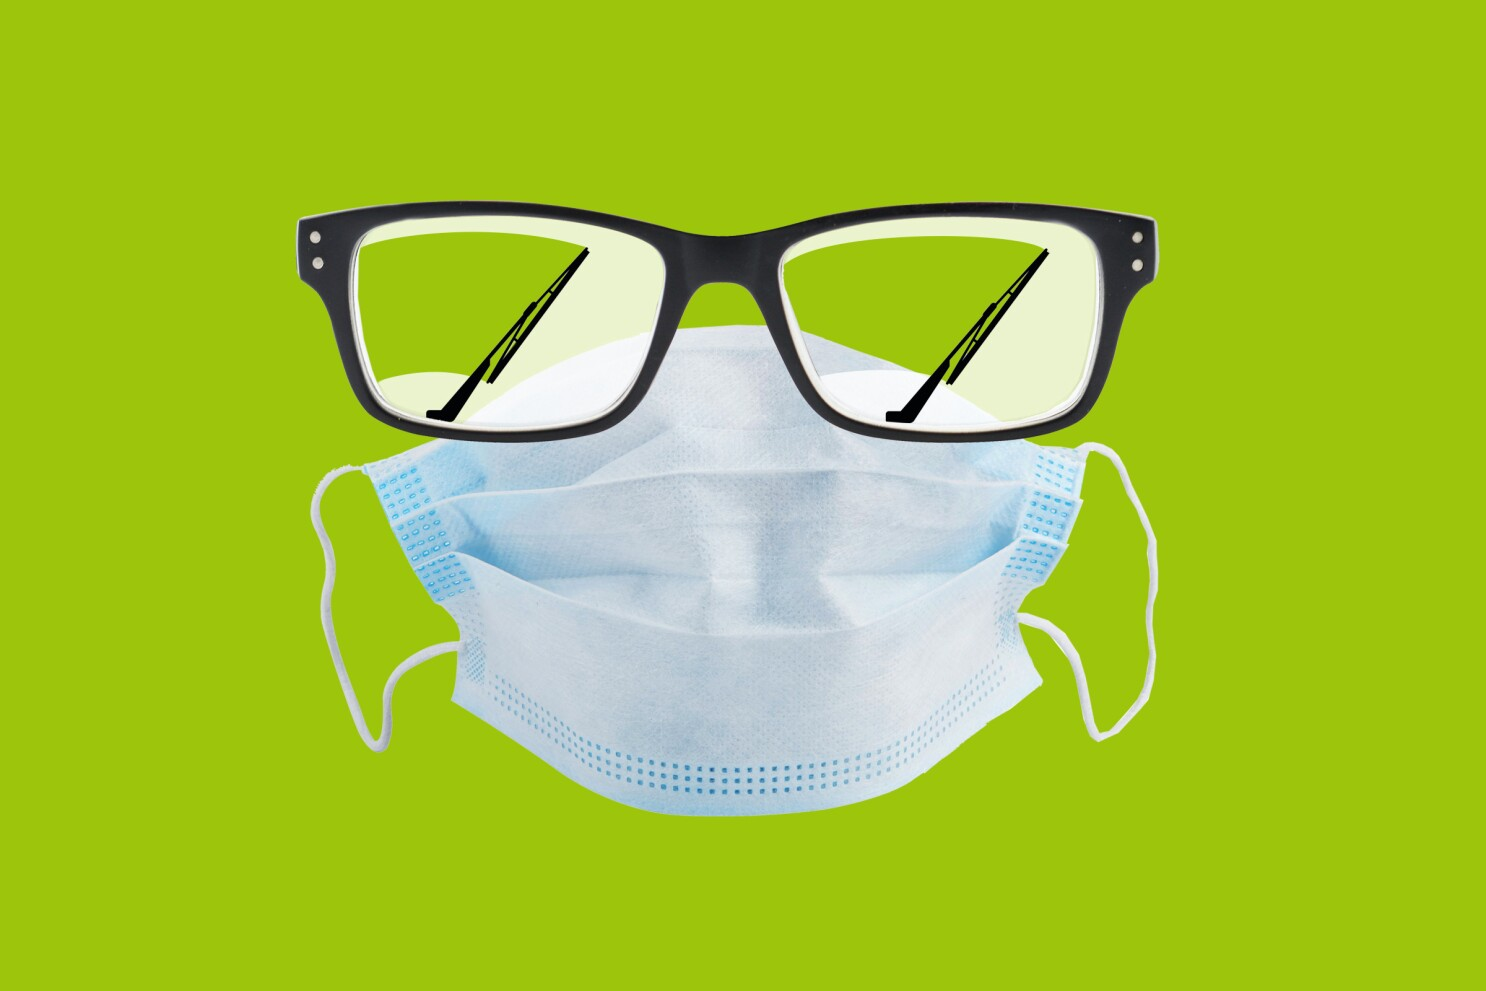 How to wear a coronavirus mask safely and comfortably - Los Angeles Times